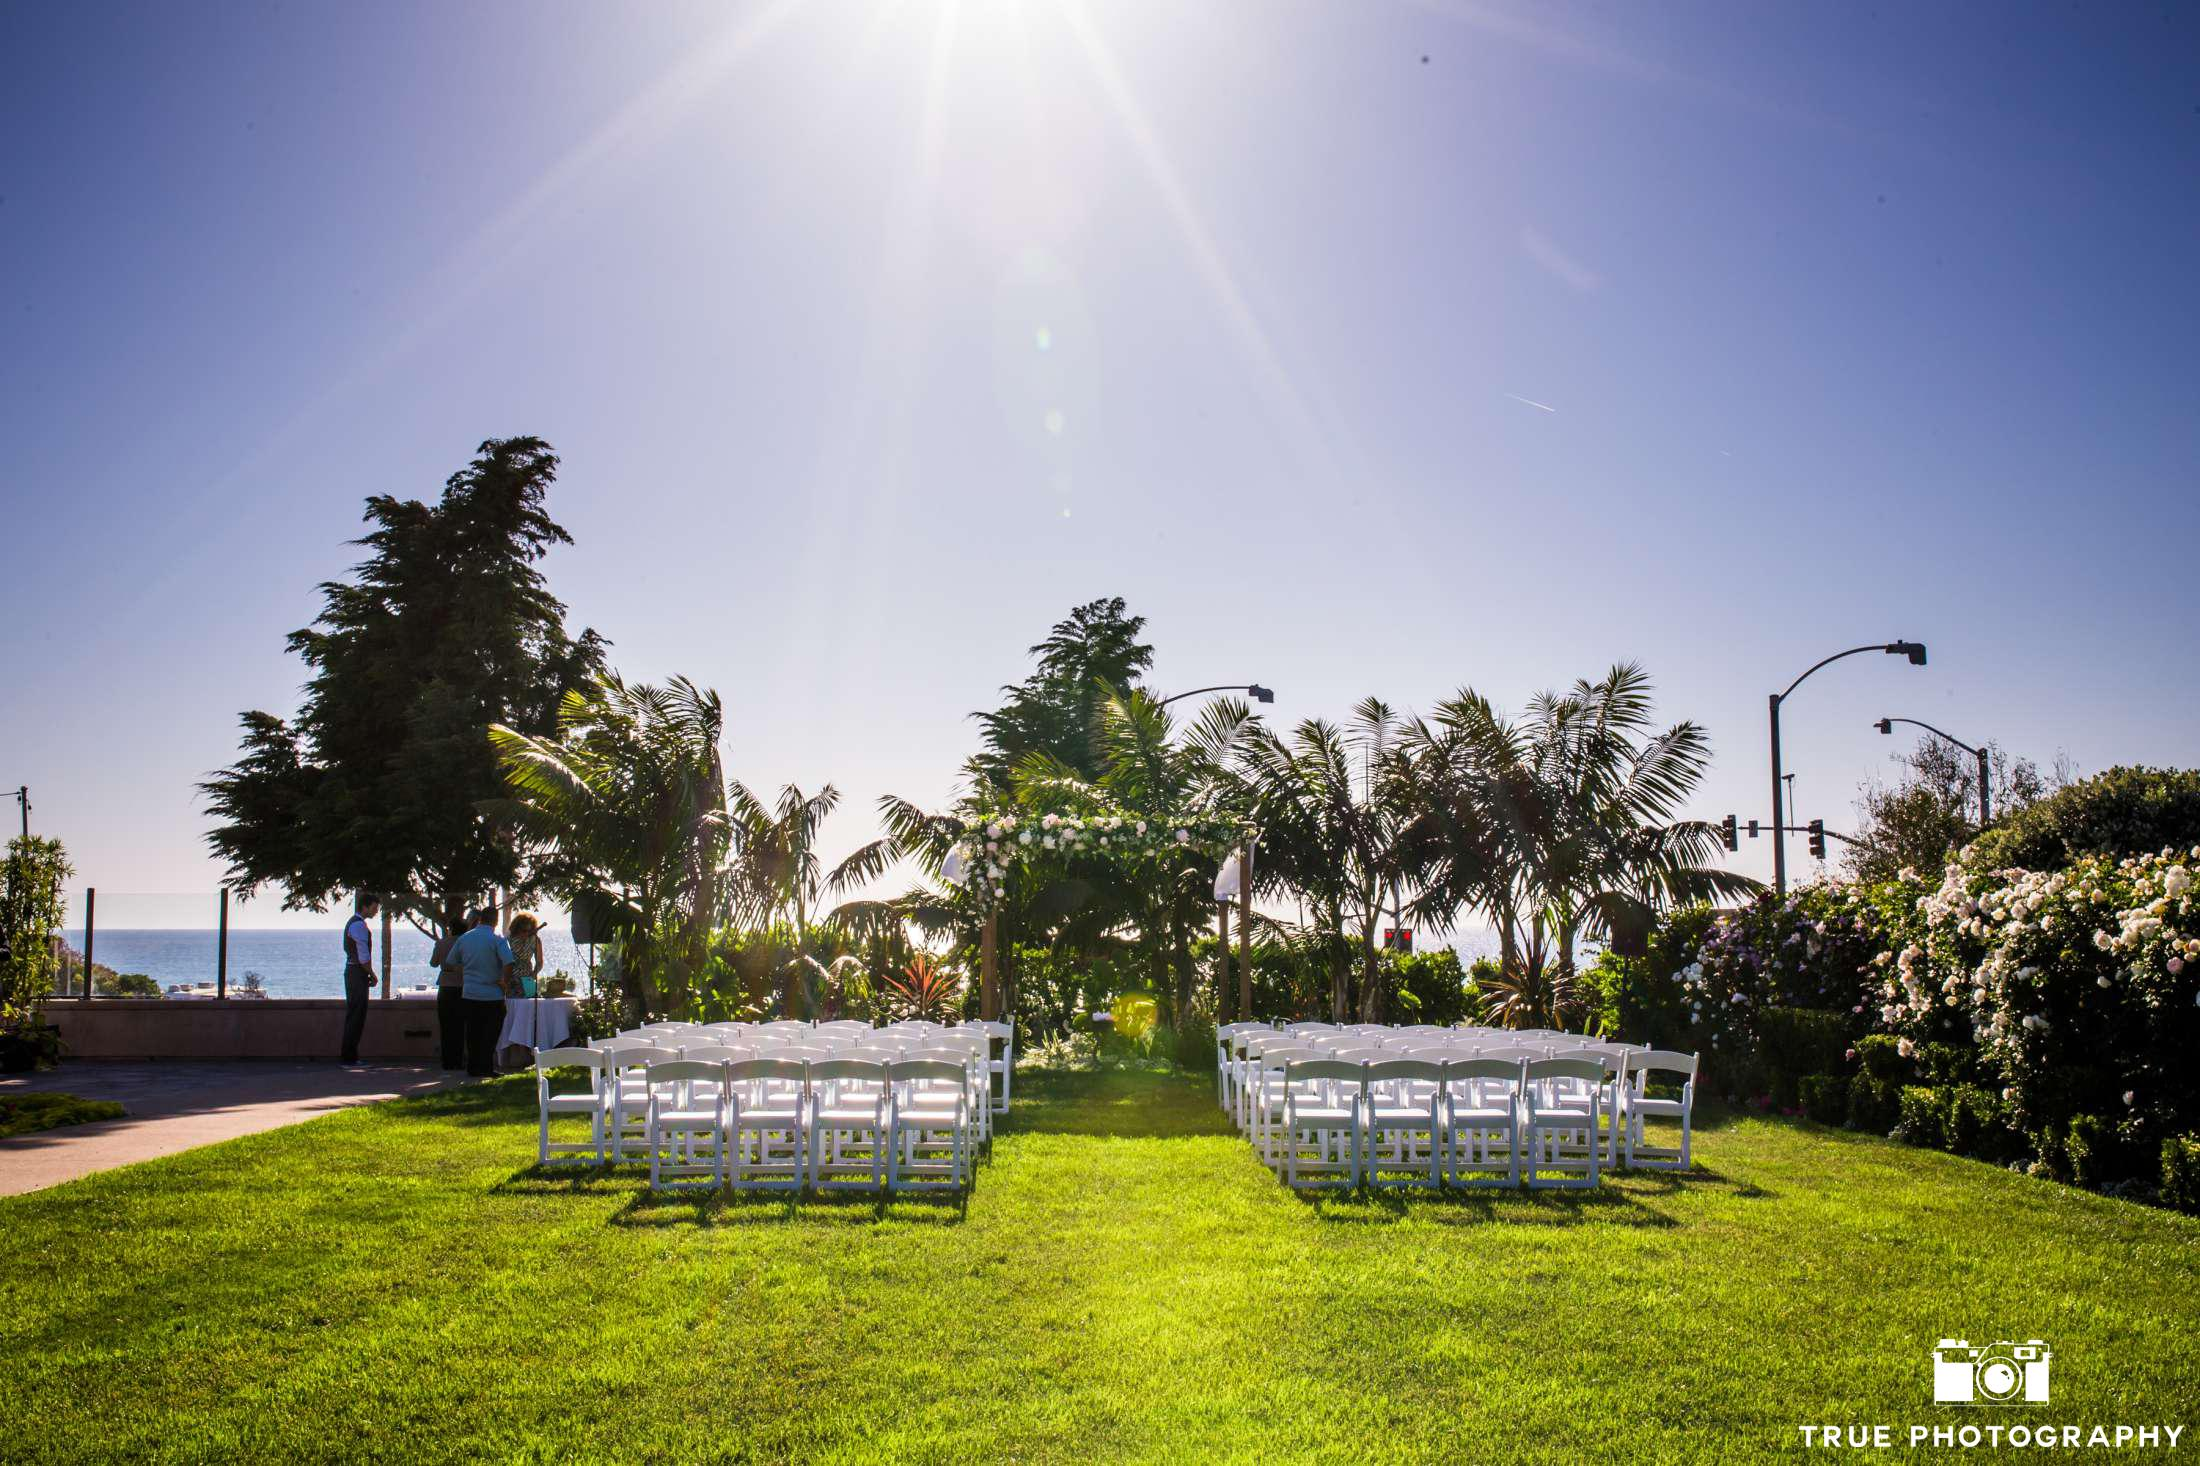 Carlsbad Beach Resort Cape Rey Carlsbad a Hilton Resort wedding ceremony venue